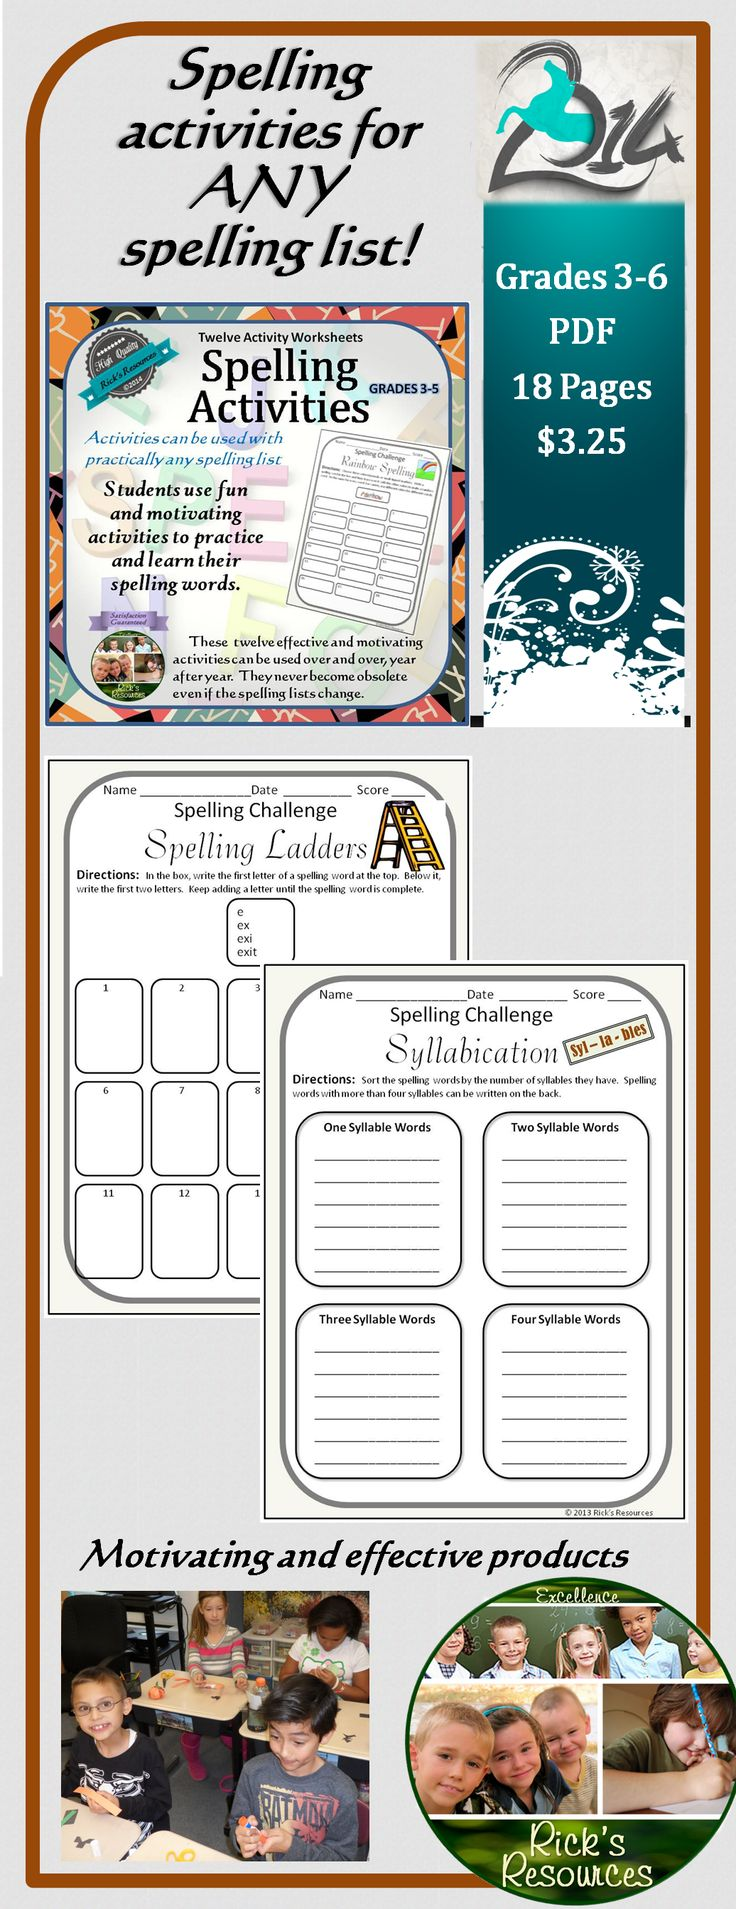 These 15 fun and motivating activities will help students practice and learn their spelling words. The activities are great for homework. school practice, review, enrichment, homeschooling. The activities can be used over and over, year after year. They never become obsolete. 18 pages.  Grades 3-6